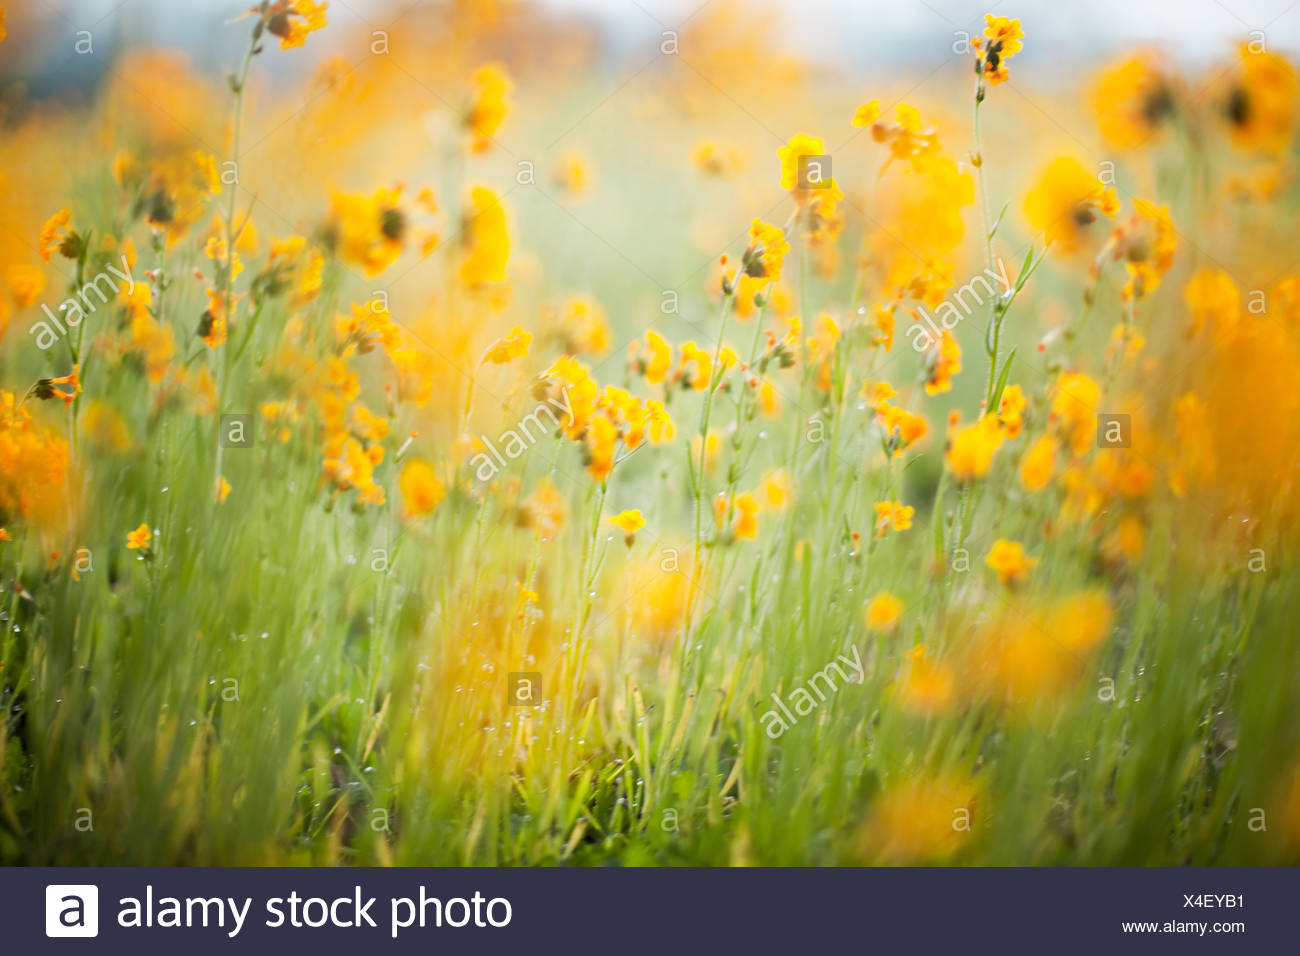 Close up yellow flowers - Stock Image